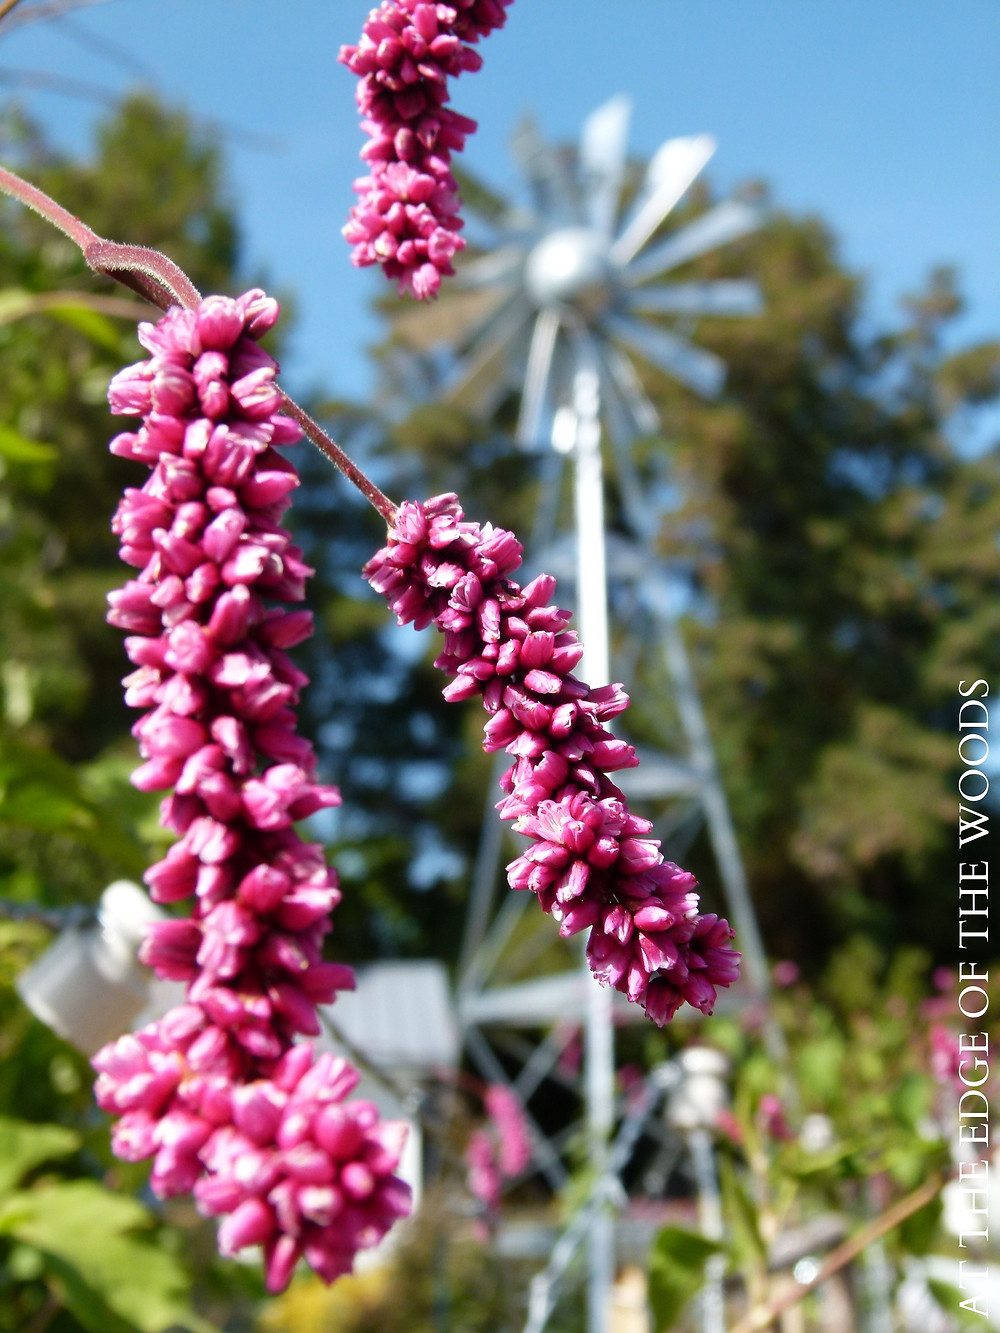 Kiss-Me-Over-The-Garden-Gate blooms